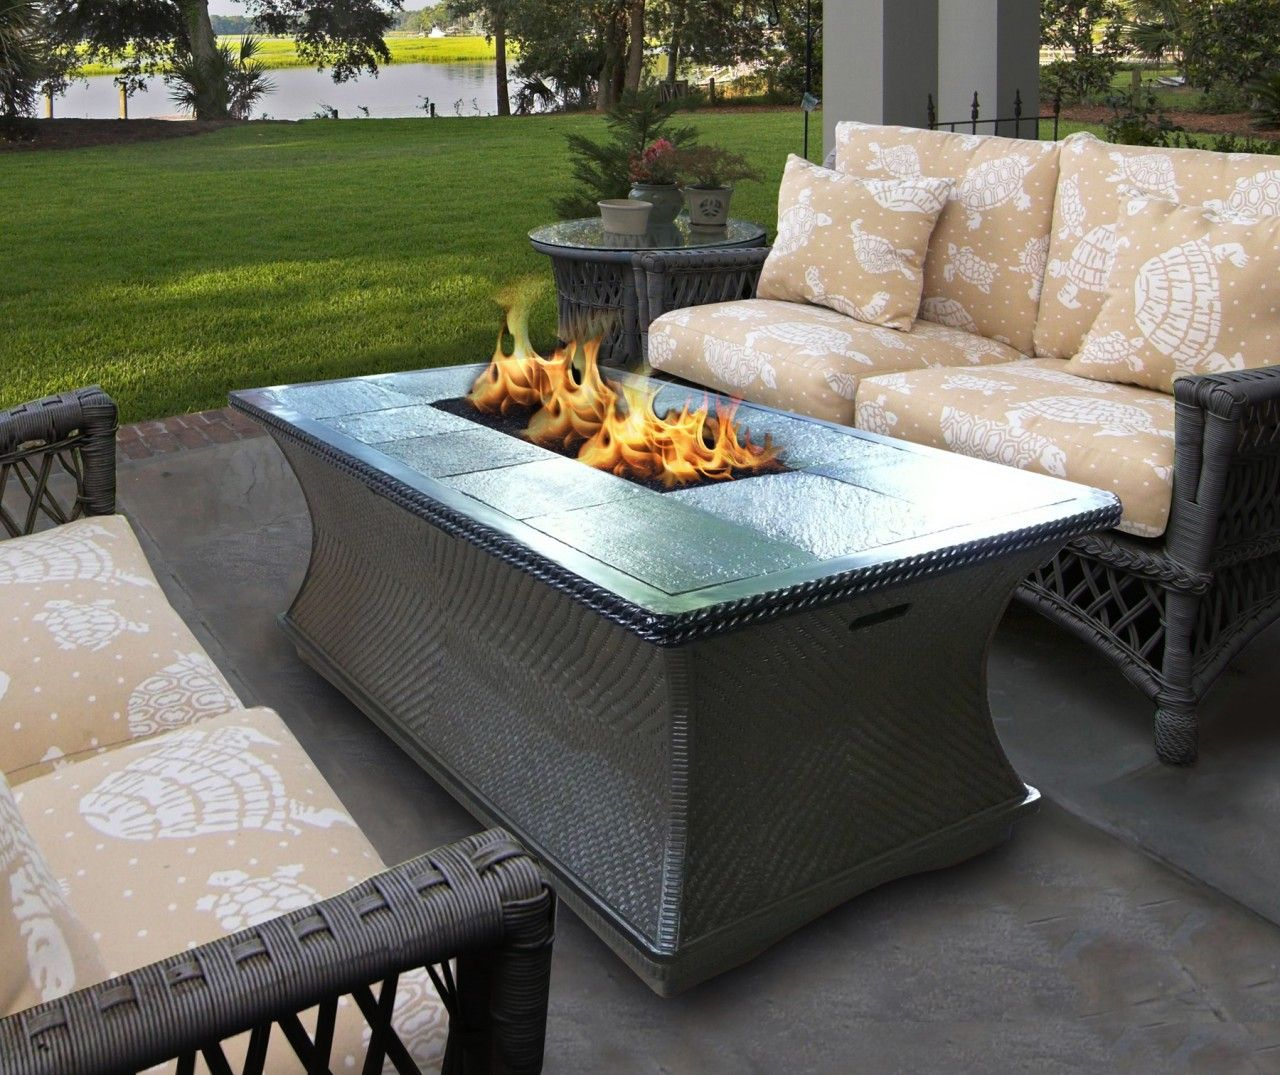 California Outdoor Concepts Monterey Firepit Coffee Table Outdoor pertaining to dimensions 1280 X 1075